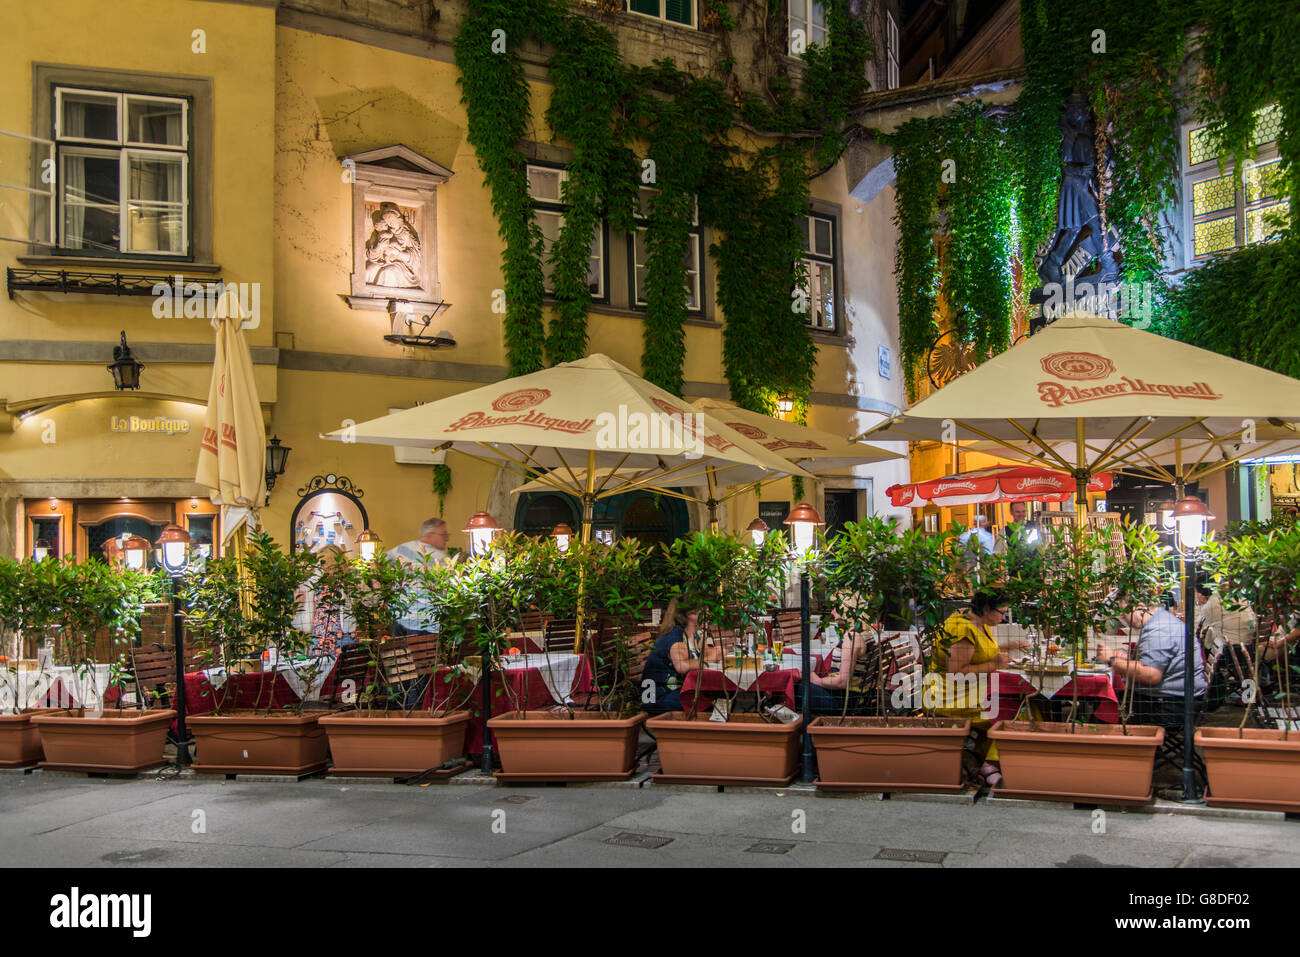 Night View Of An Outdoor Cafe Restaurant In The Historic Centre Stock Photo Alamy